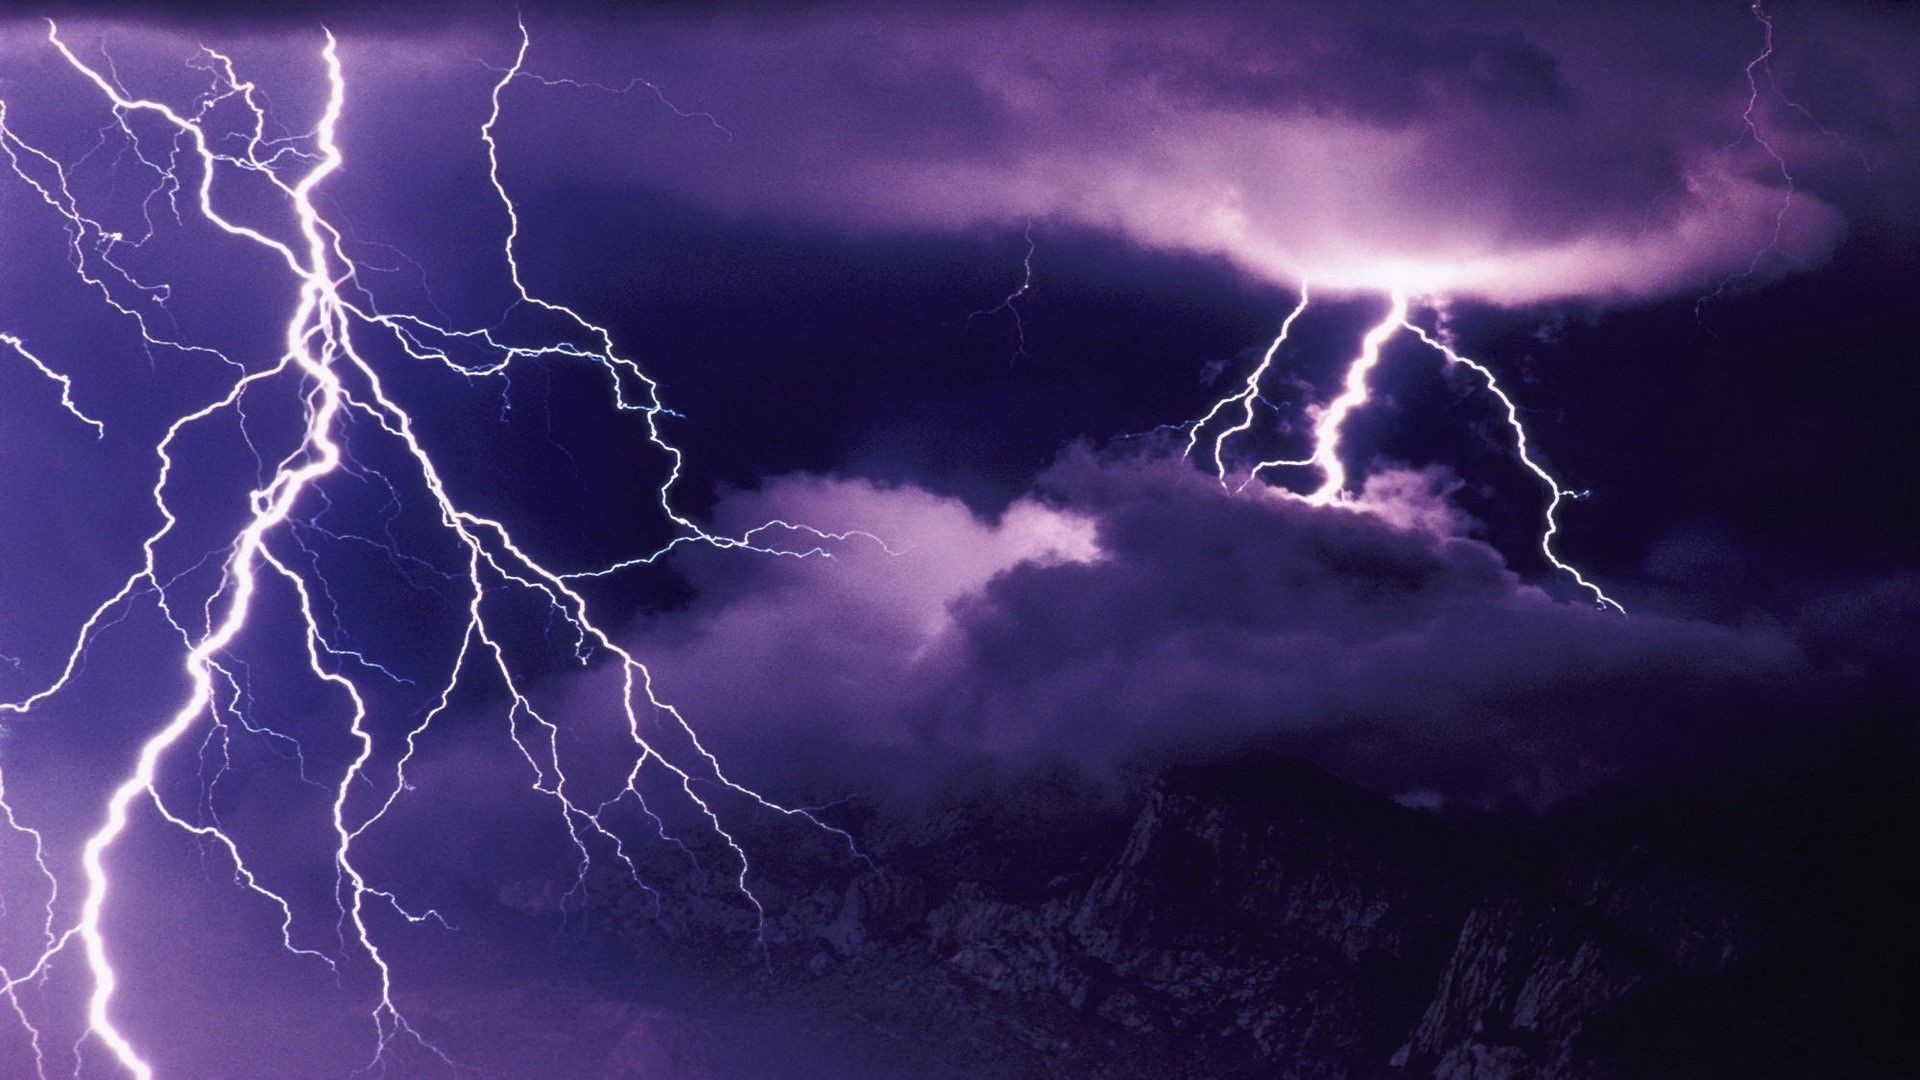 1920x1080 Lightning Storm Wallpaper HD Free.